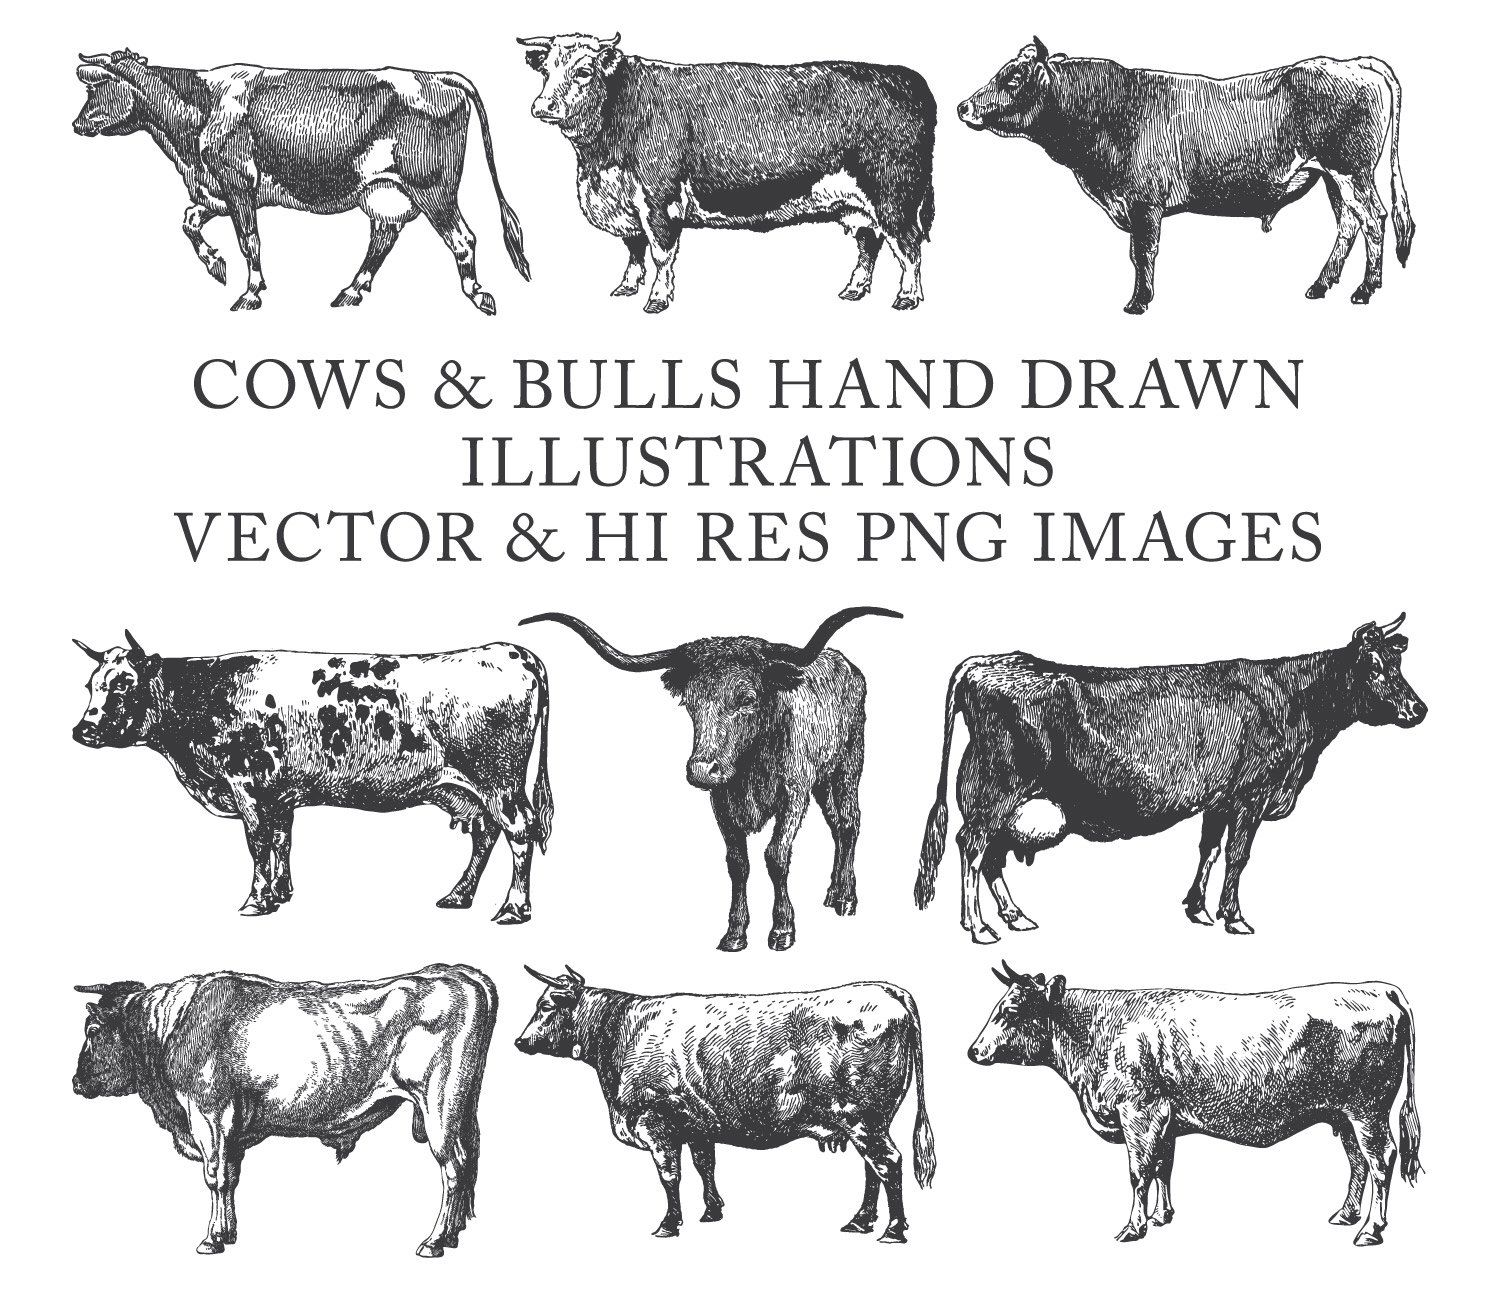 Pin by Rosemarie Benson on COWBOYS How to draw hands